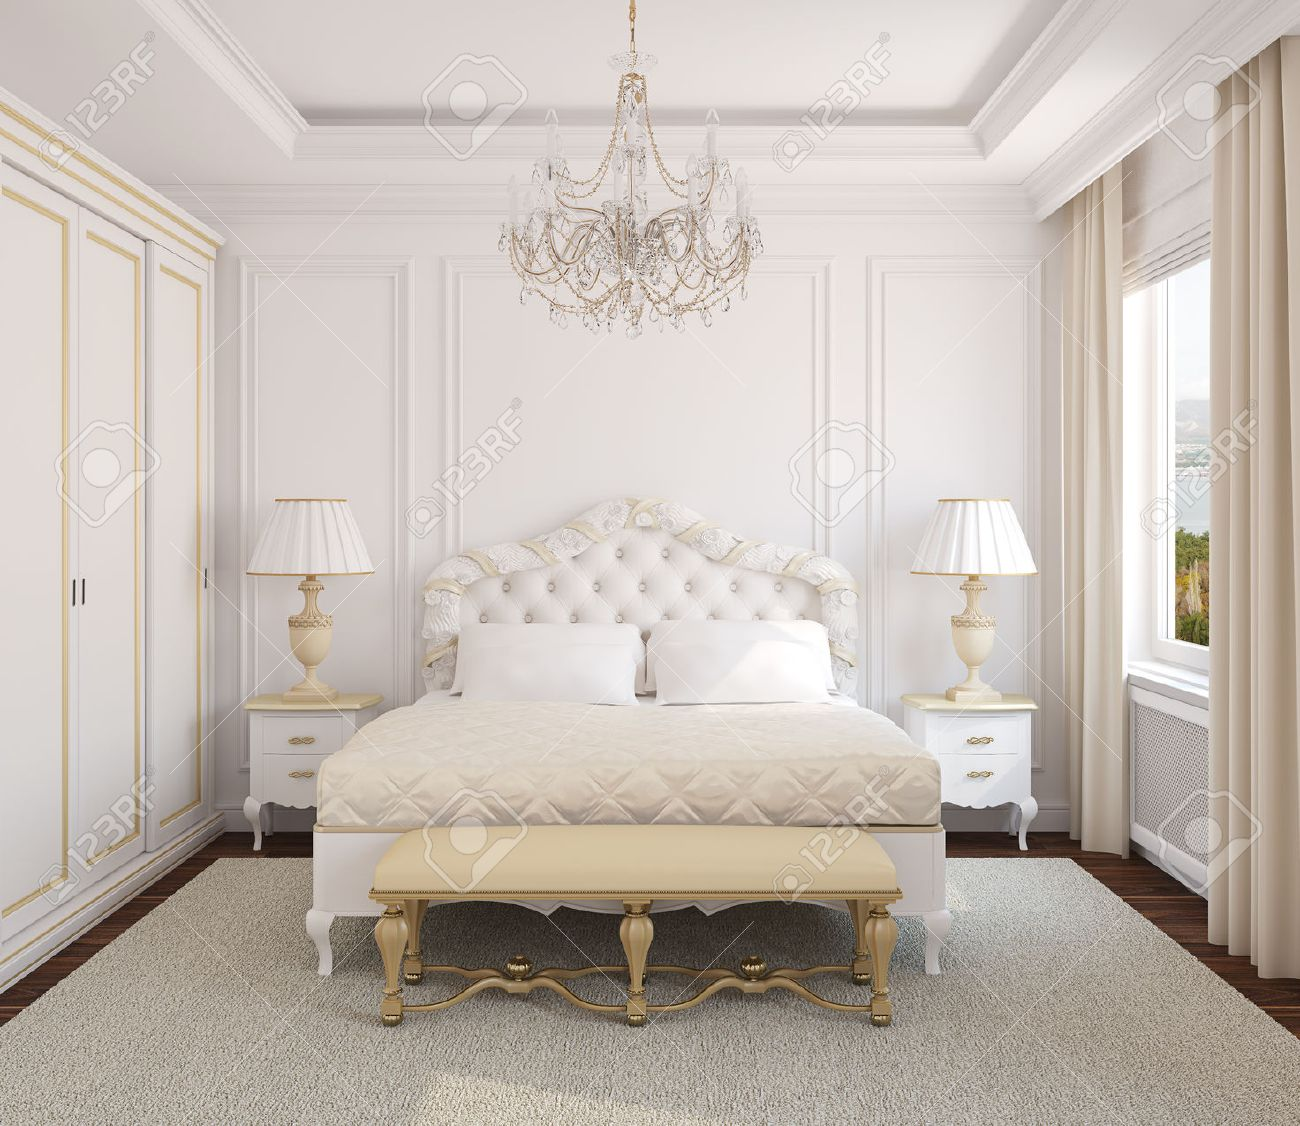 Classical white bedroom interior. 3d render. Photo behind the window was made by me. - 45647843